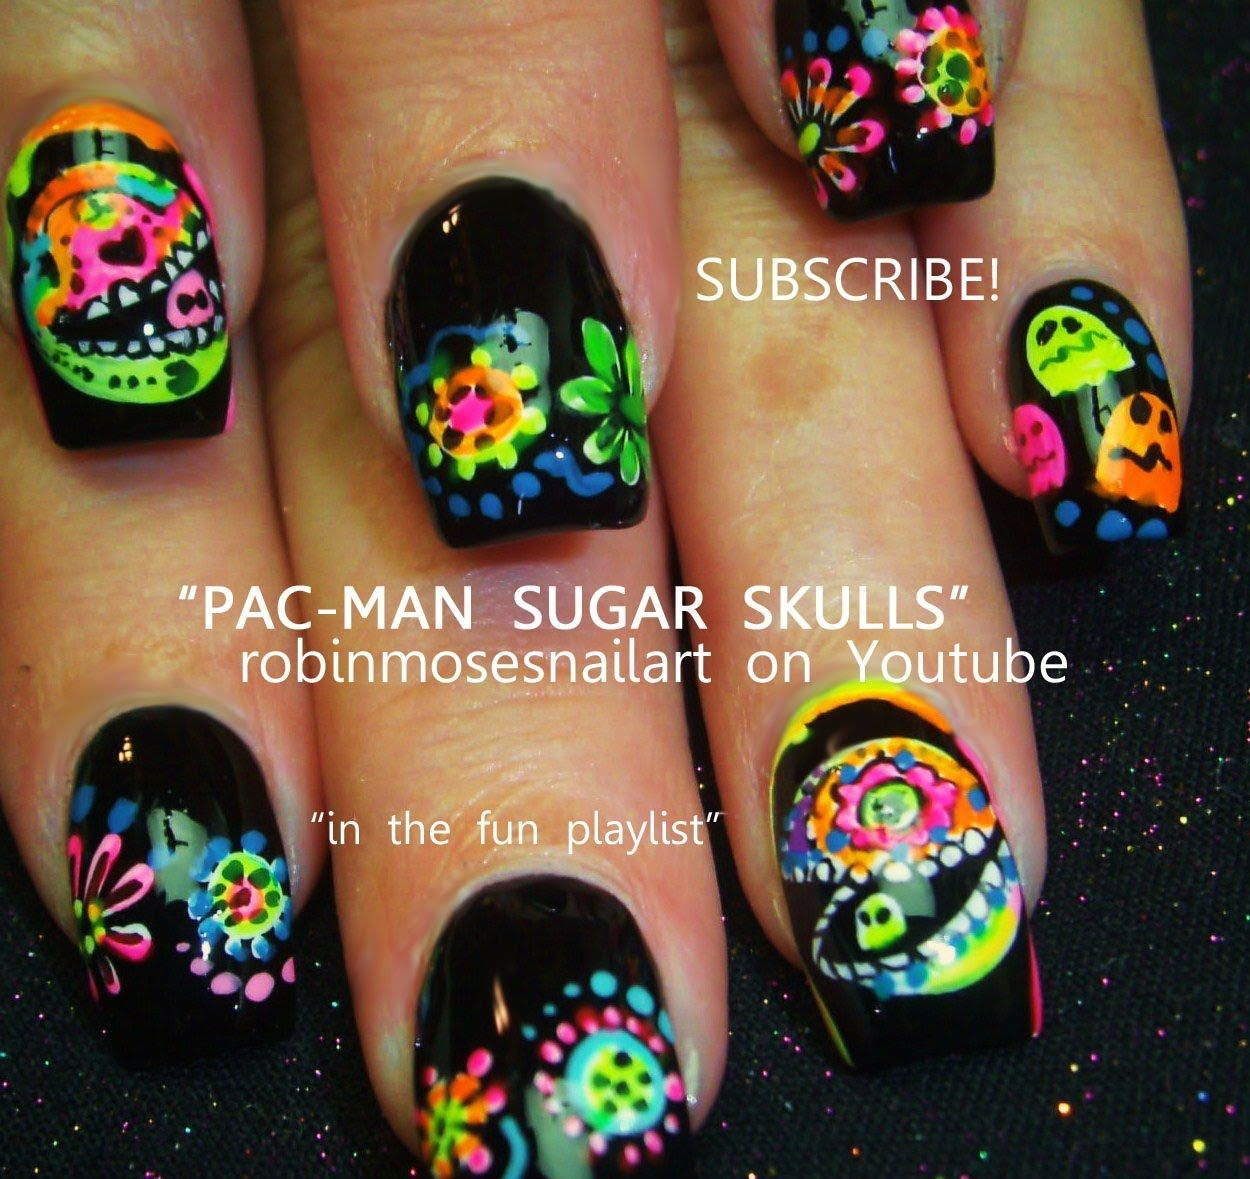 Dia De Los Muertos Nail Art | Great Nail Art Design | Pinterest ...